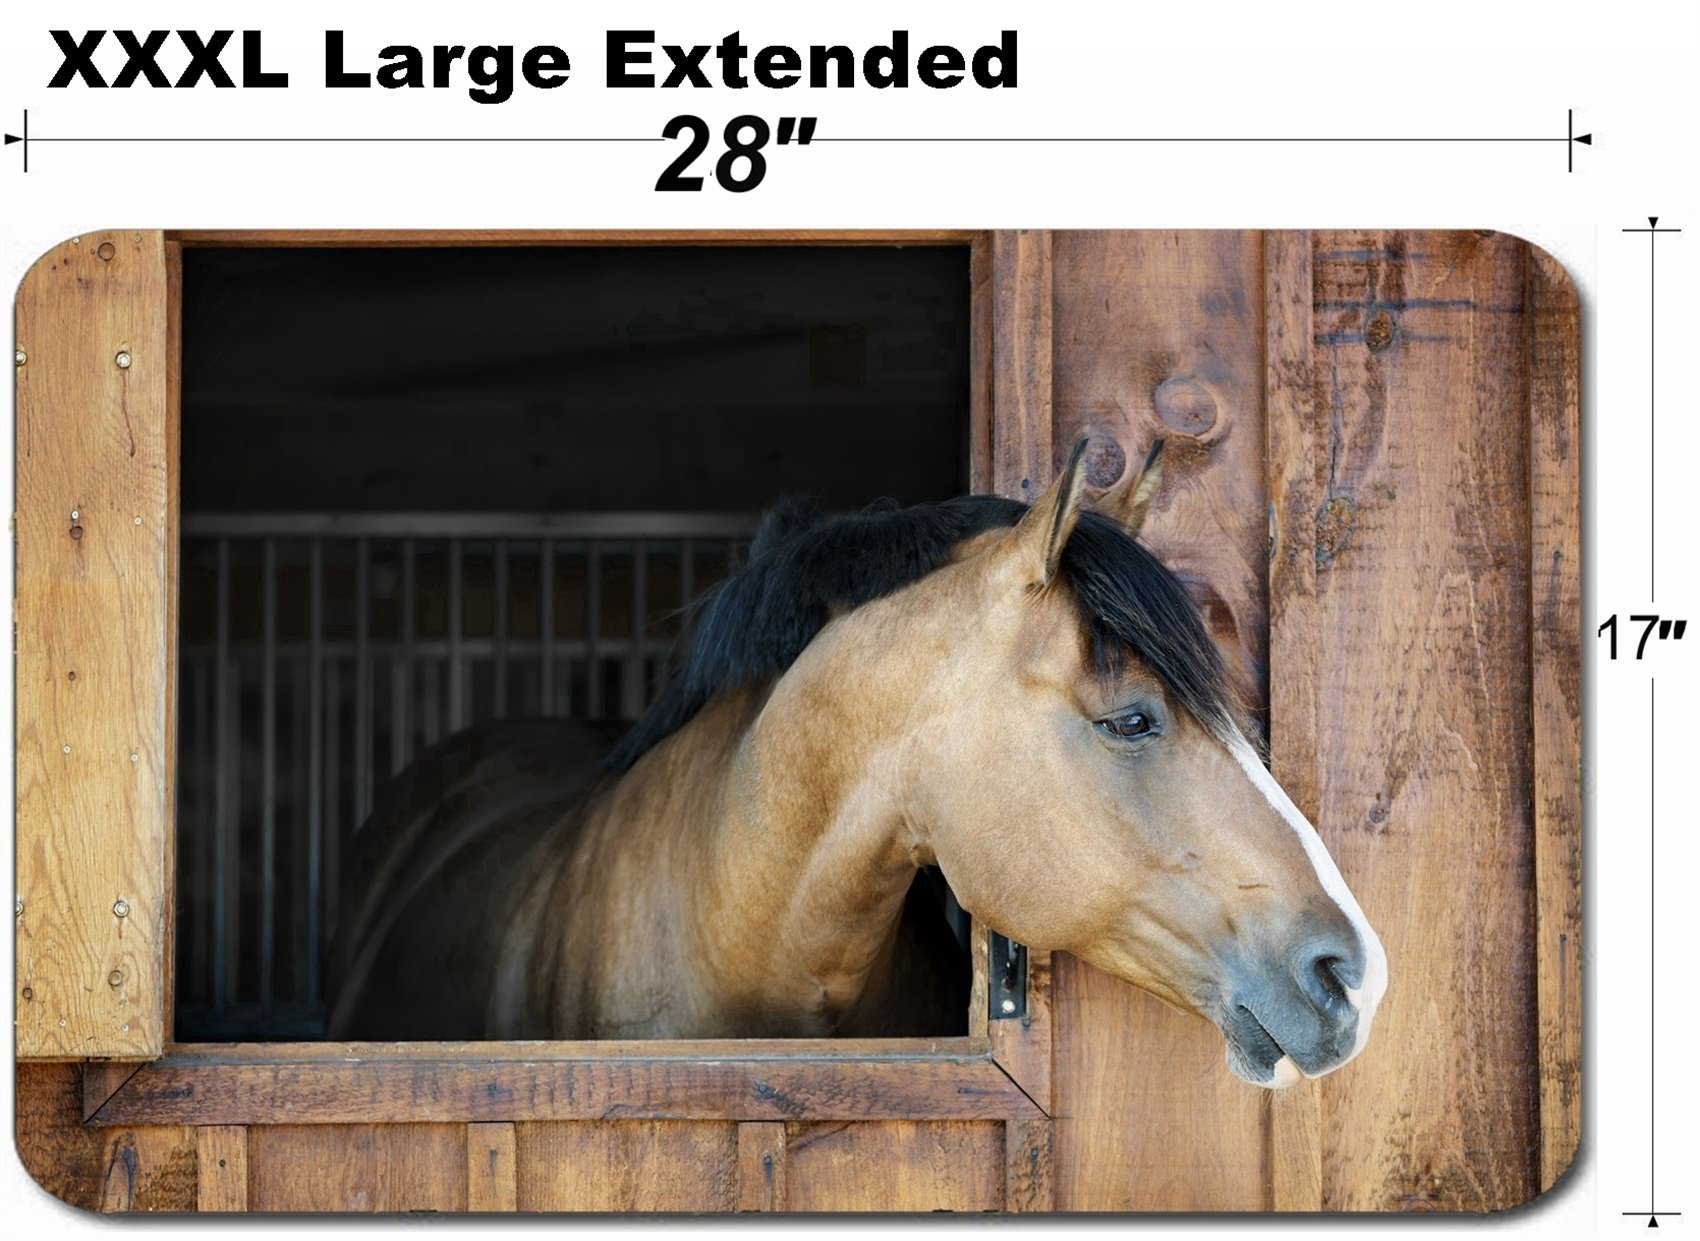 MSD Large Table Mat Non-Slip Natural Rubber Desk Pads Image 26501525 Curious Brown Horse Looking Out Stable Window